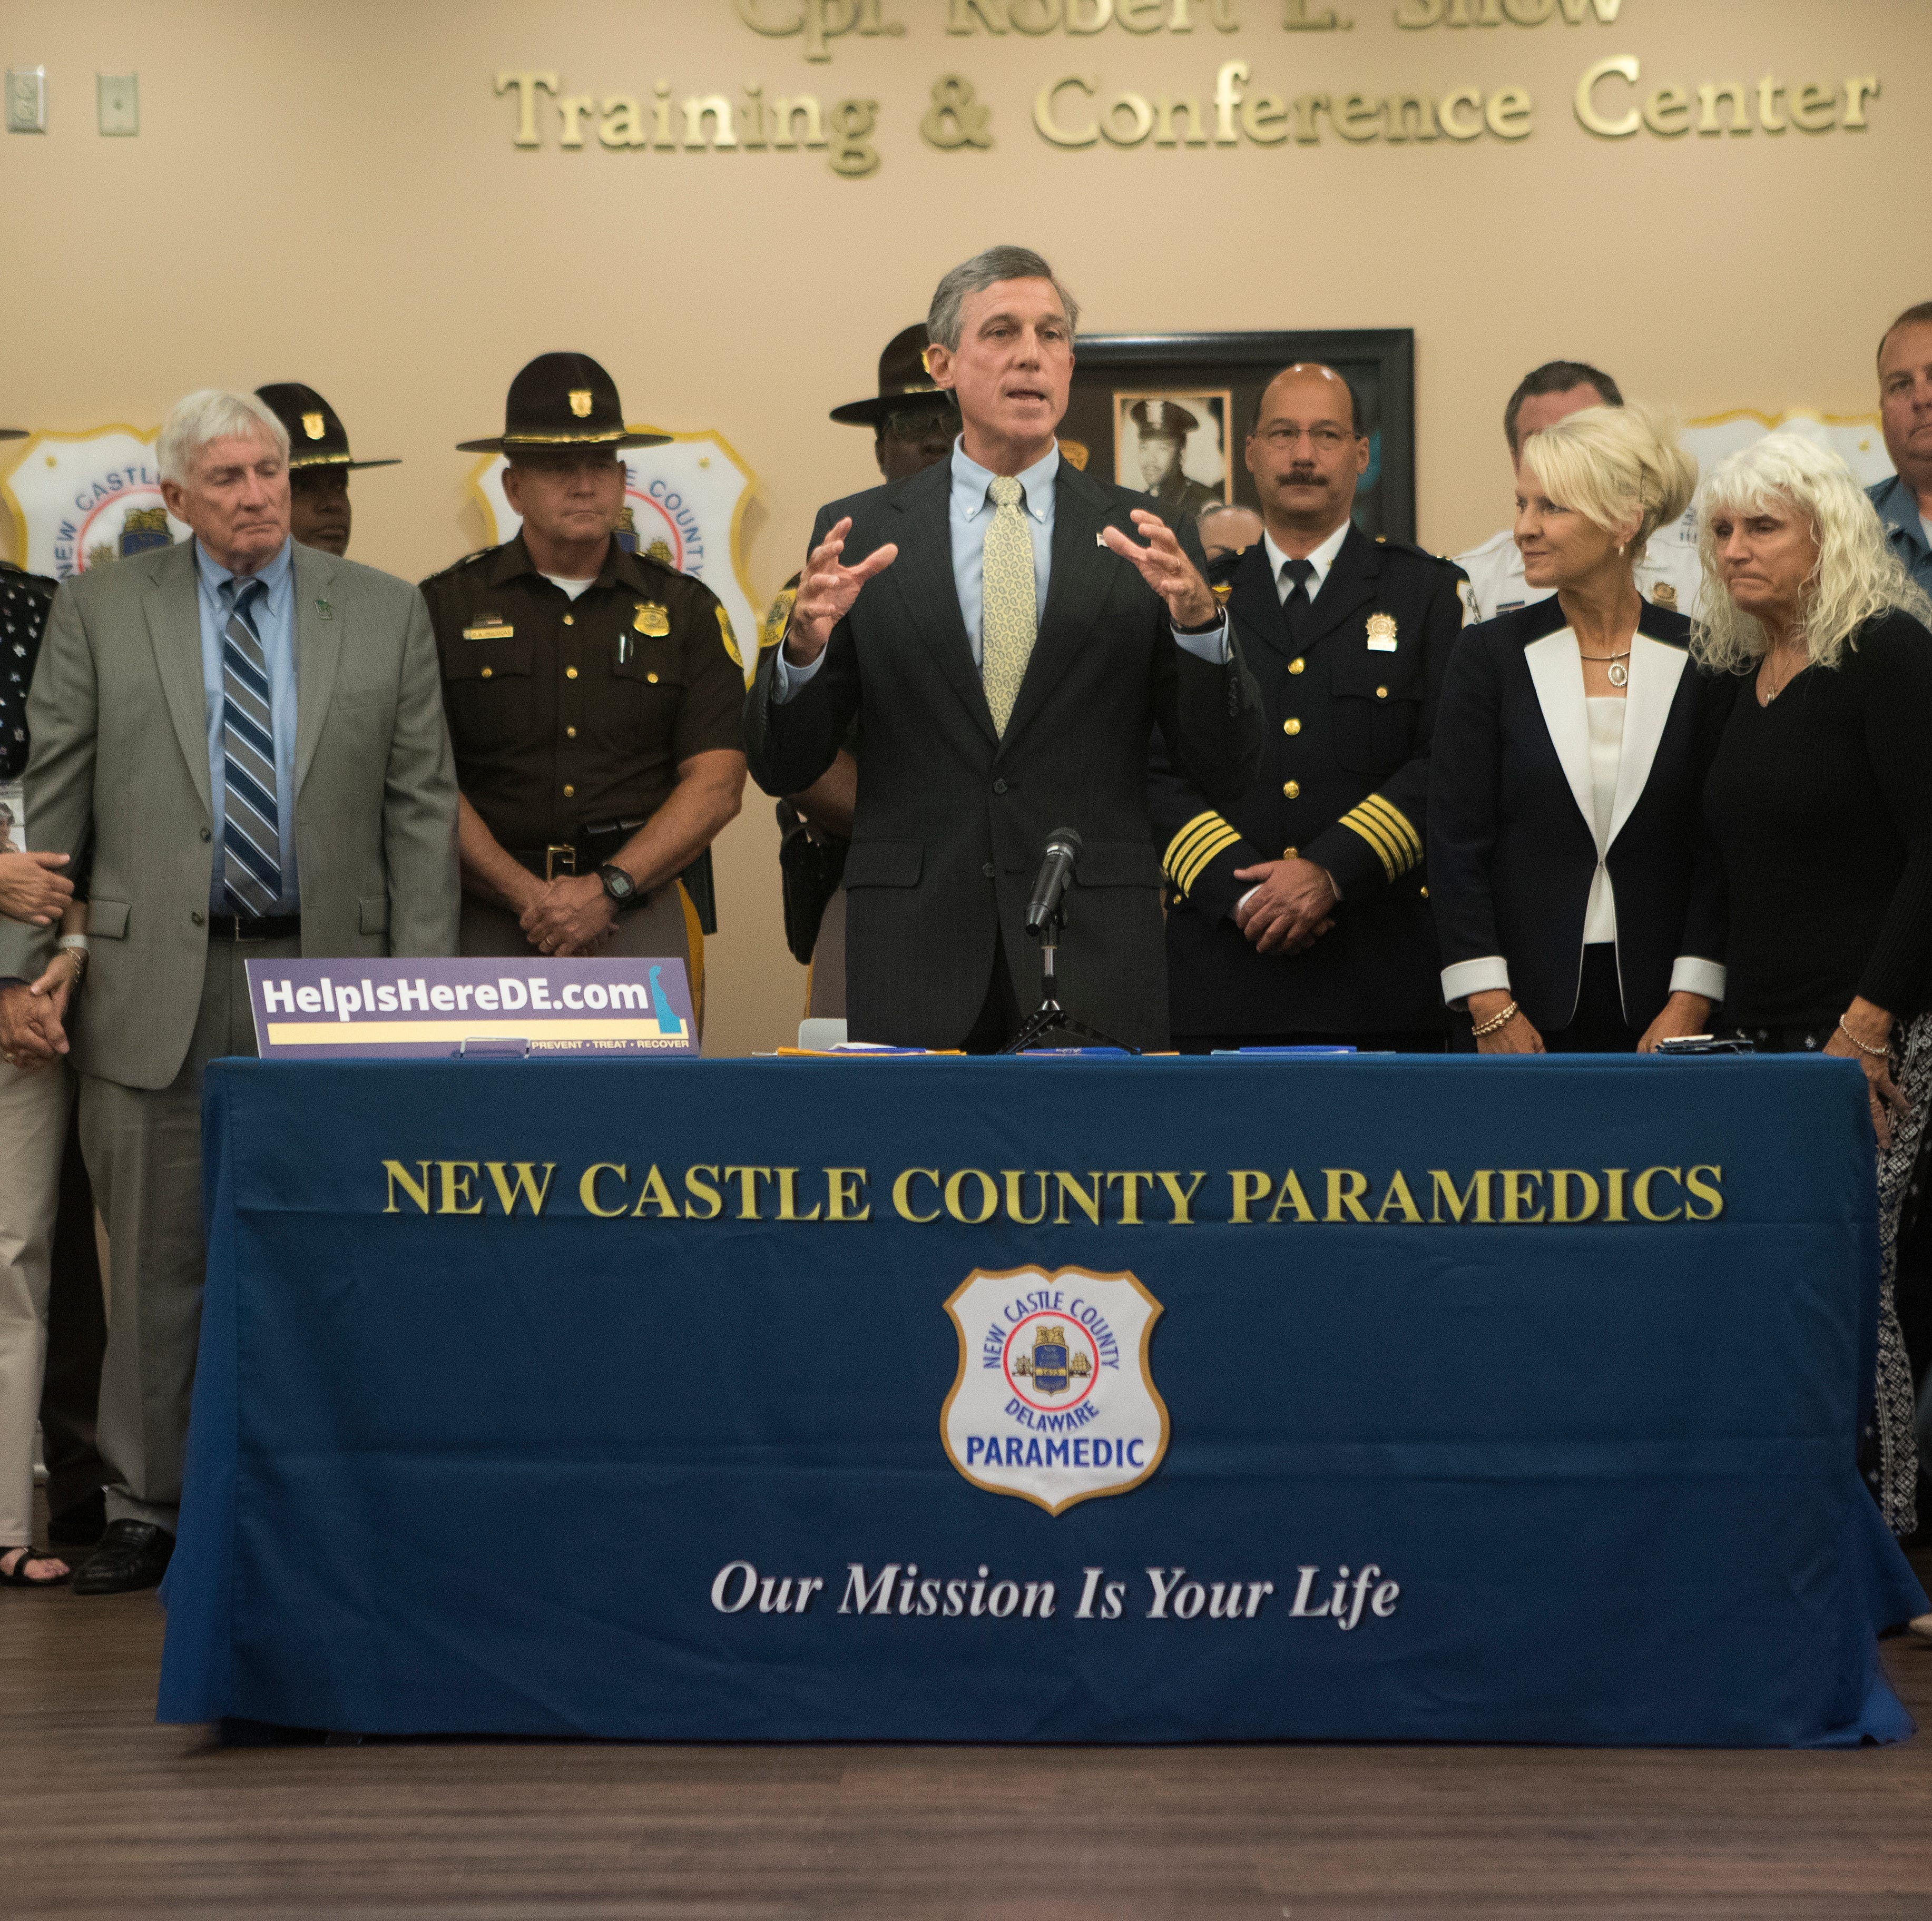 Delaware loses 39 lives in deadliest month ever from drug overdoses